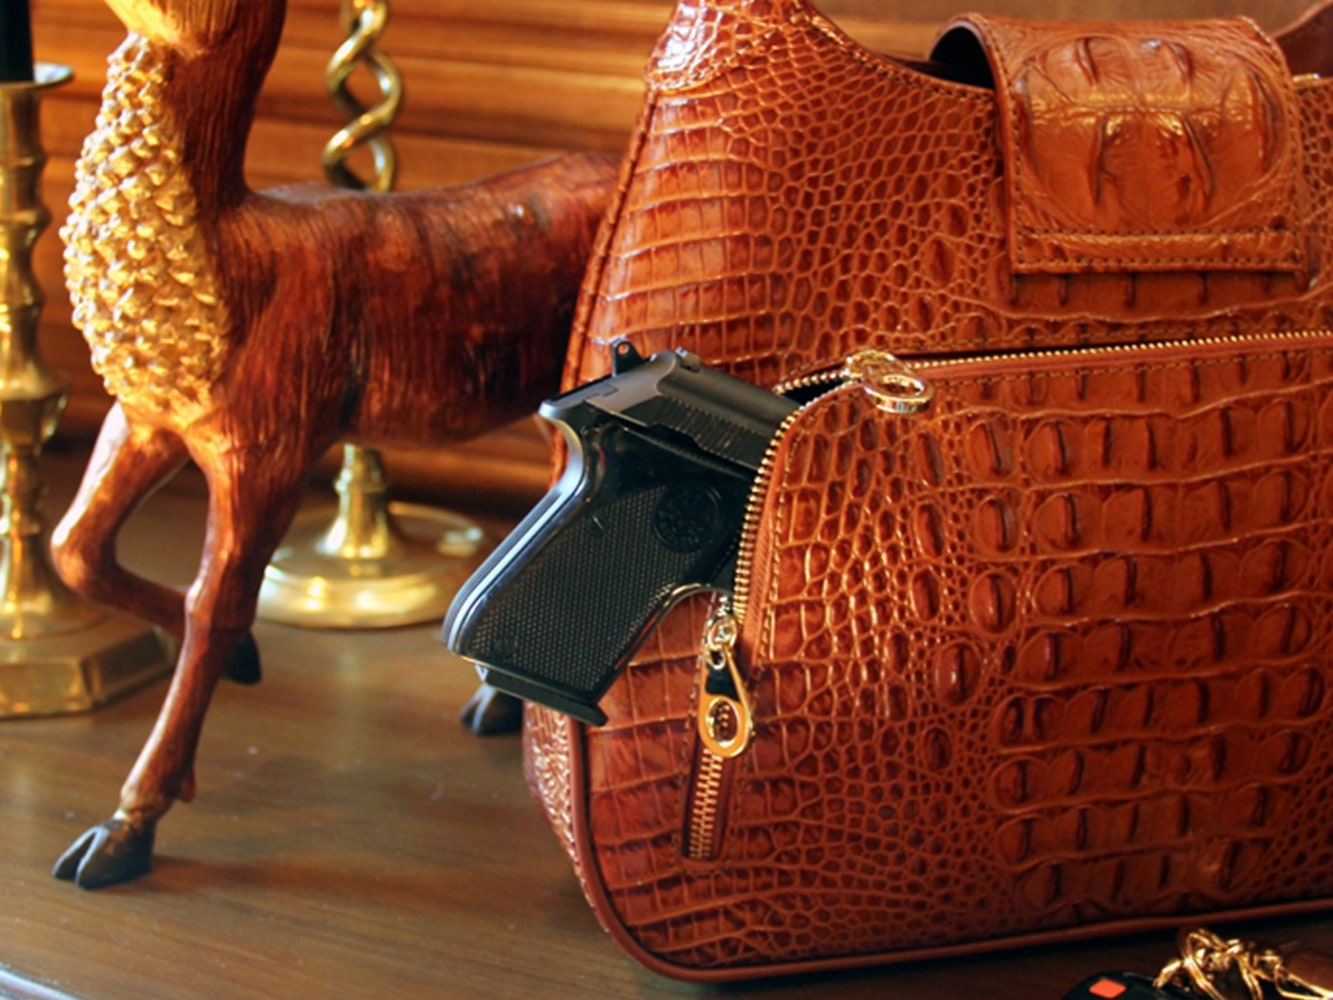 Packing Heat In Style High End Purses Help Women Conceal